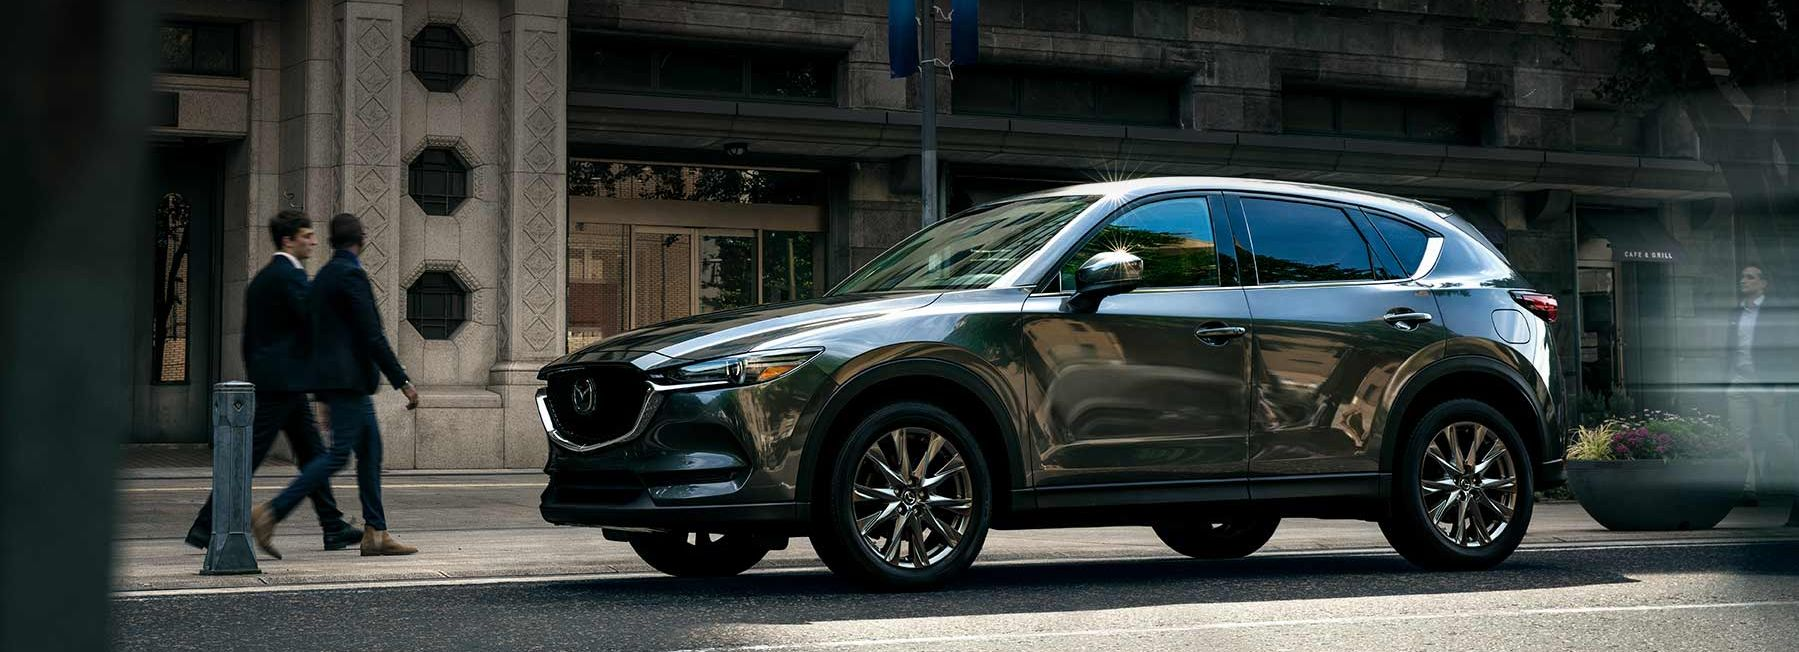 2019 Mazda CX-5 Financing near Lodi, CA